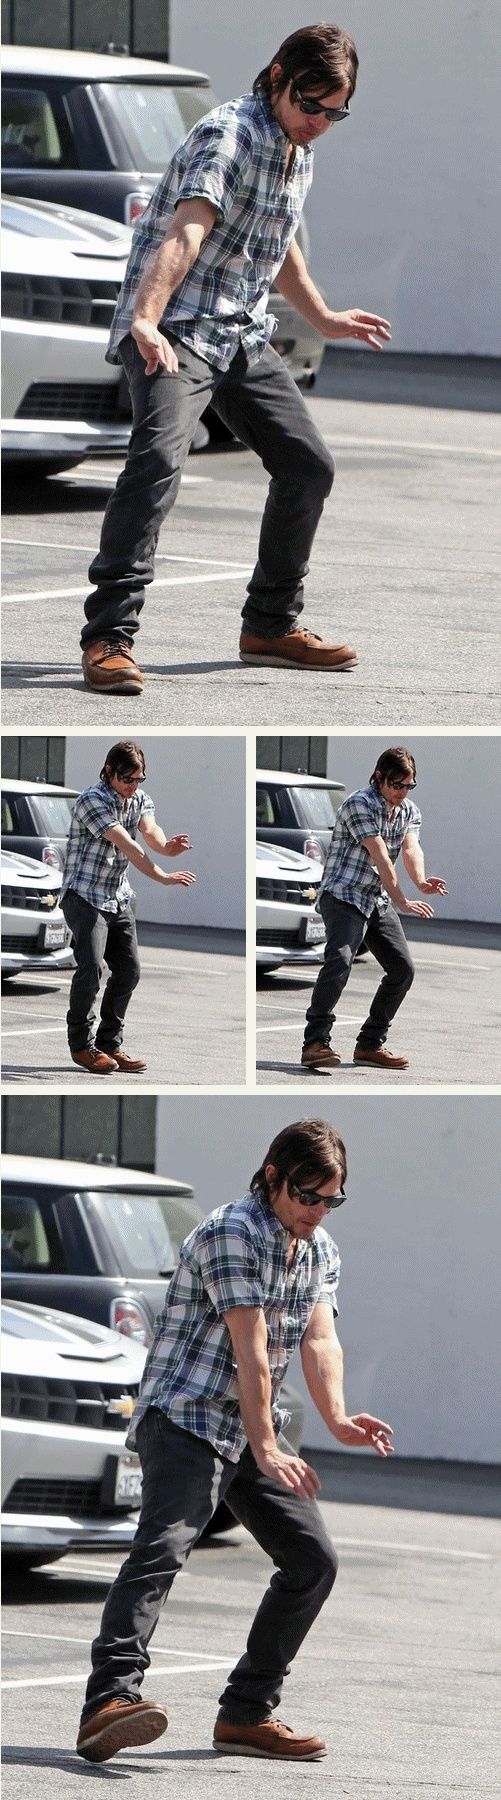 Norman Reedus: a.k.a. Daryl Dixon from The Walking Dead, dancing for the paparazzi. Lol!